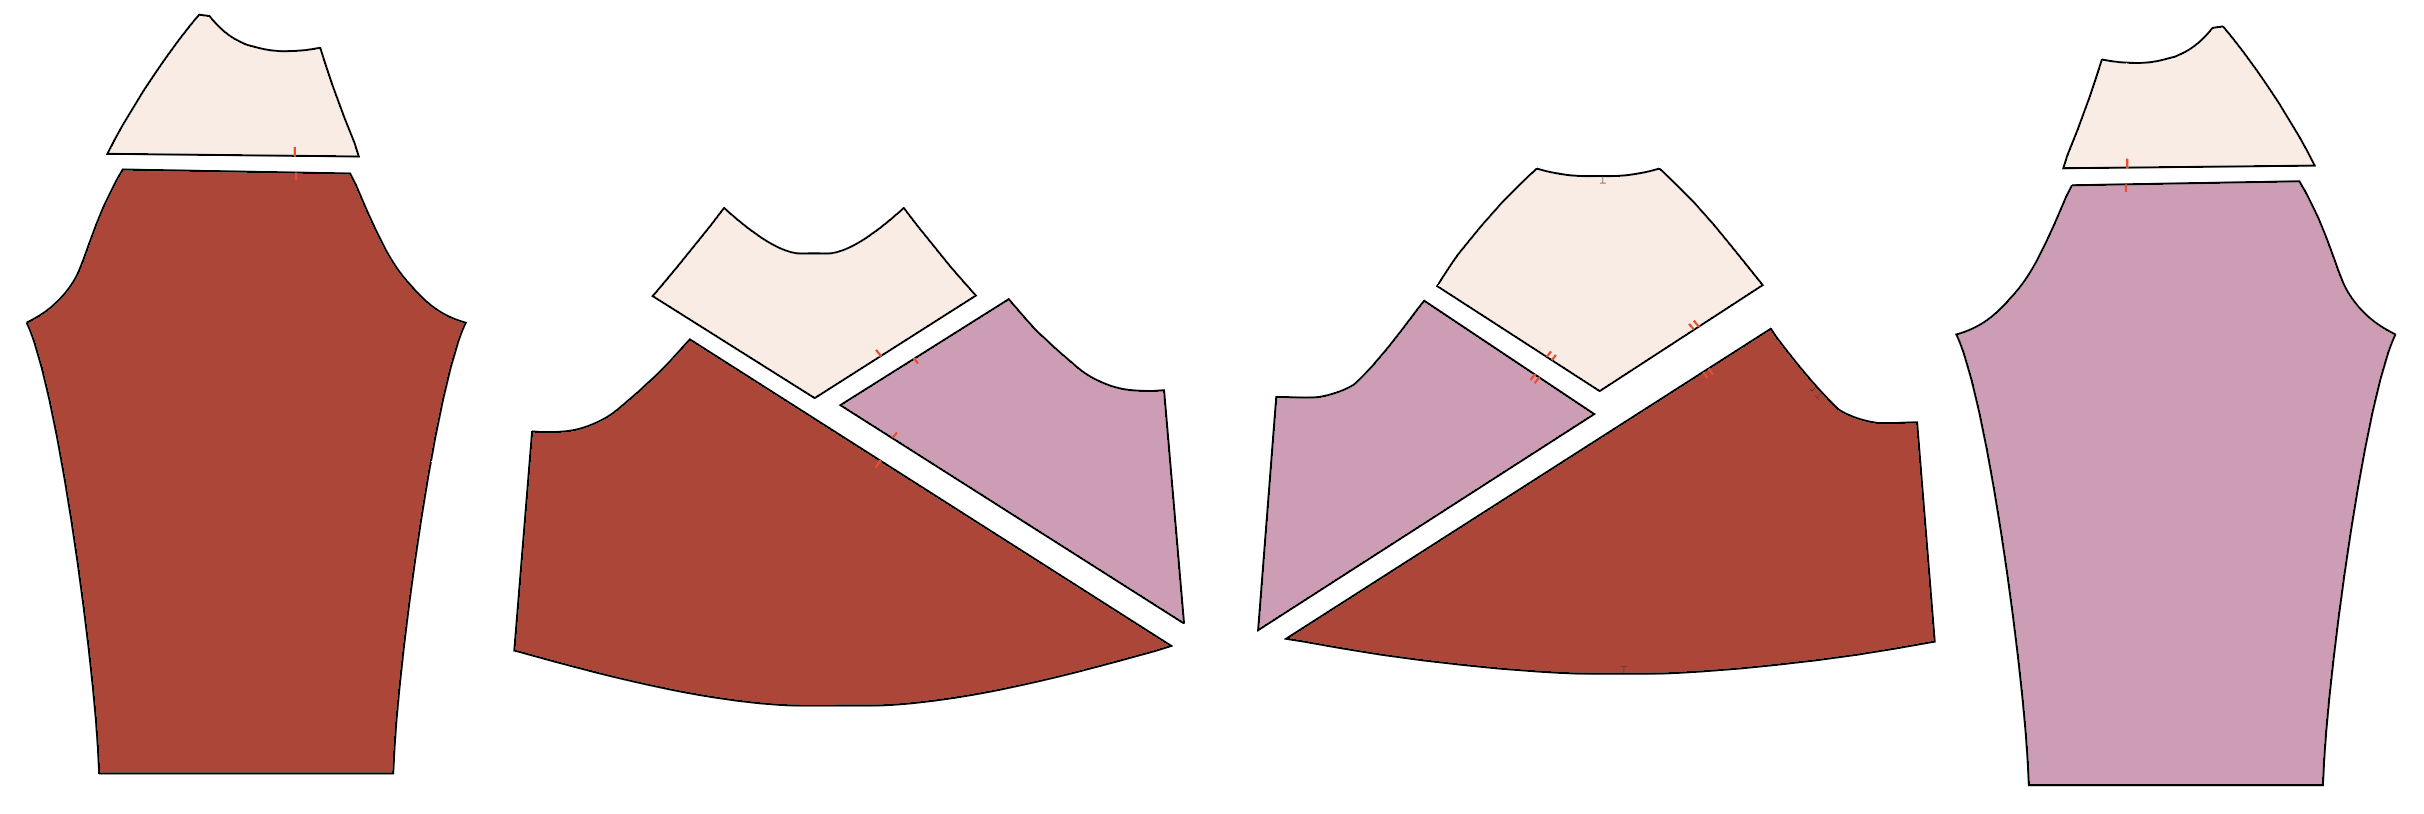 illustration shows cut color-blocked pattern pieces